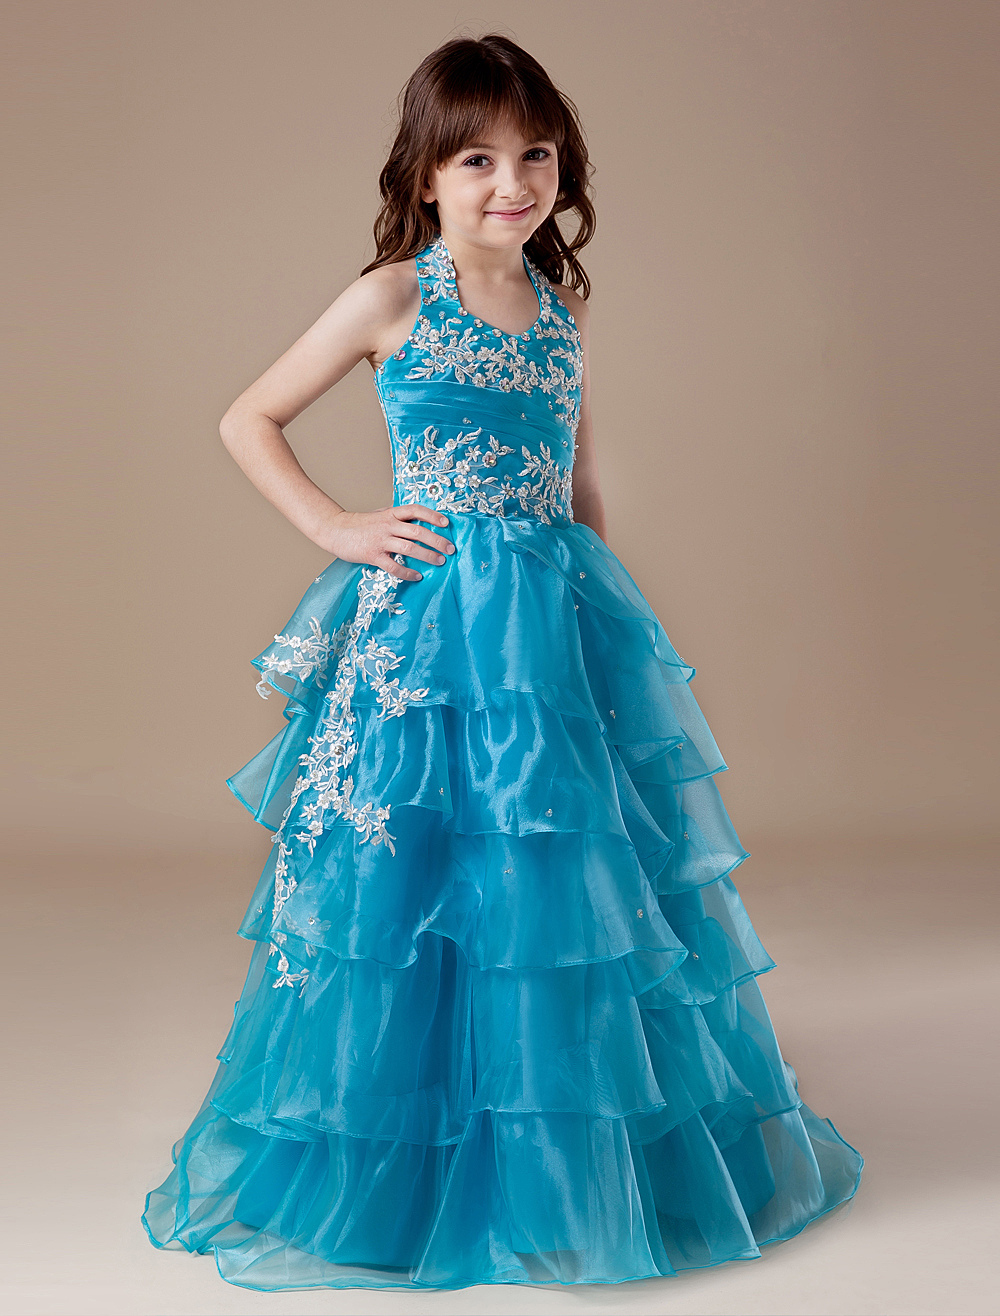 Toddler's Pageant Dress Ball Gown Floor Length Teal Organza Halter Applique Tiered  Flower Girl Dress